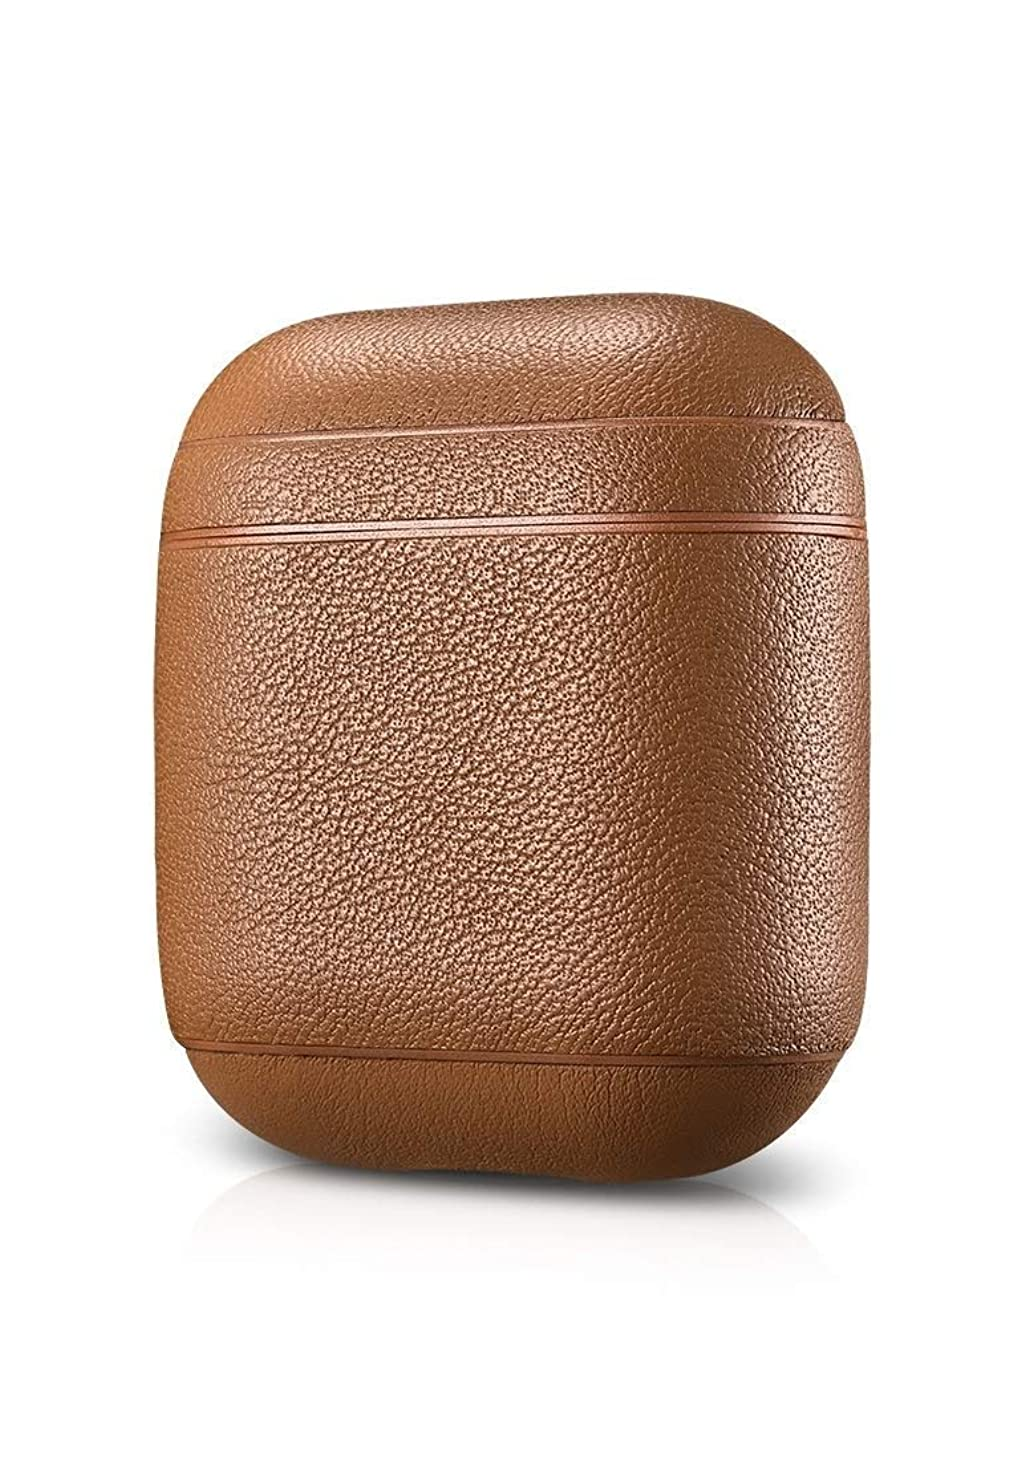 AirPods Case Leather - Protective Shockproof Handmade Premium Cover for Apple AirPods and AirPods with Wireless Charging Case (Nappa Brown)